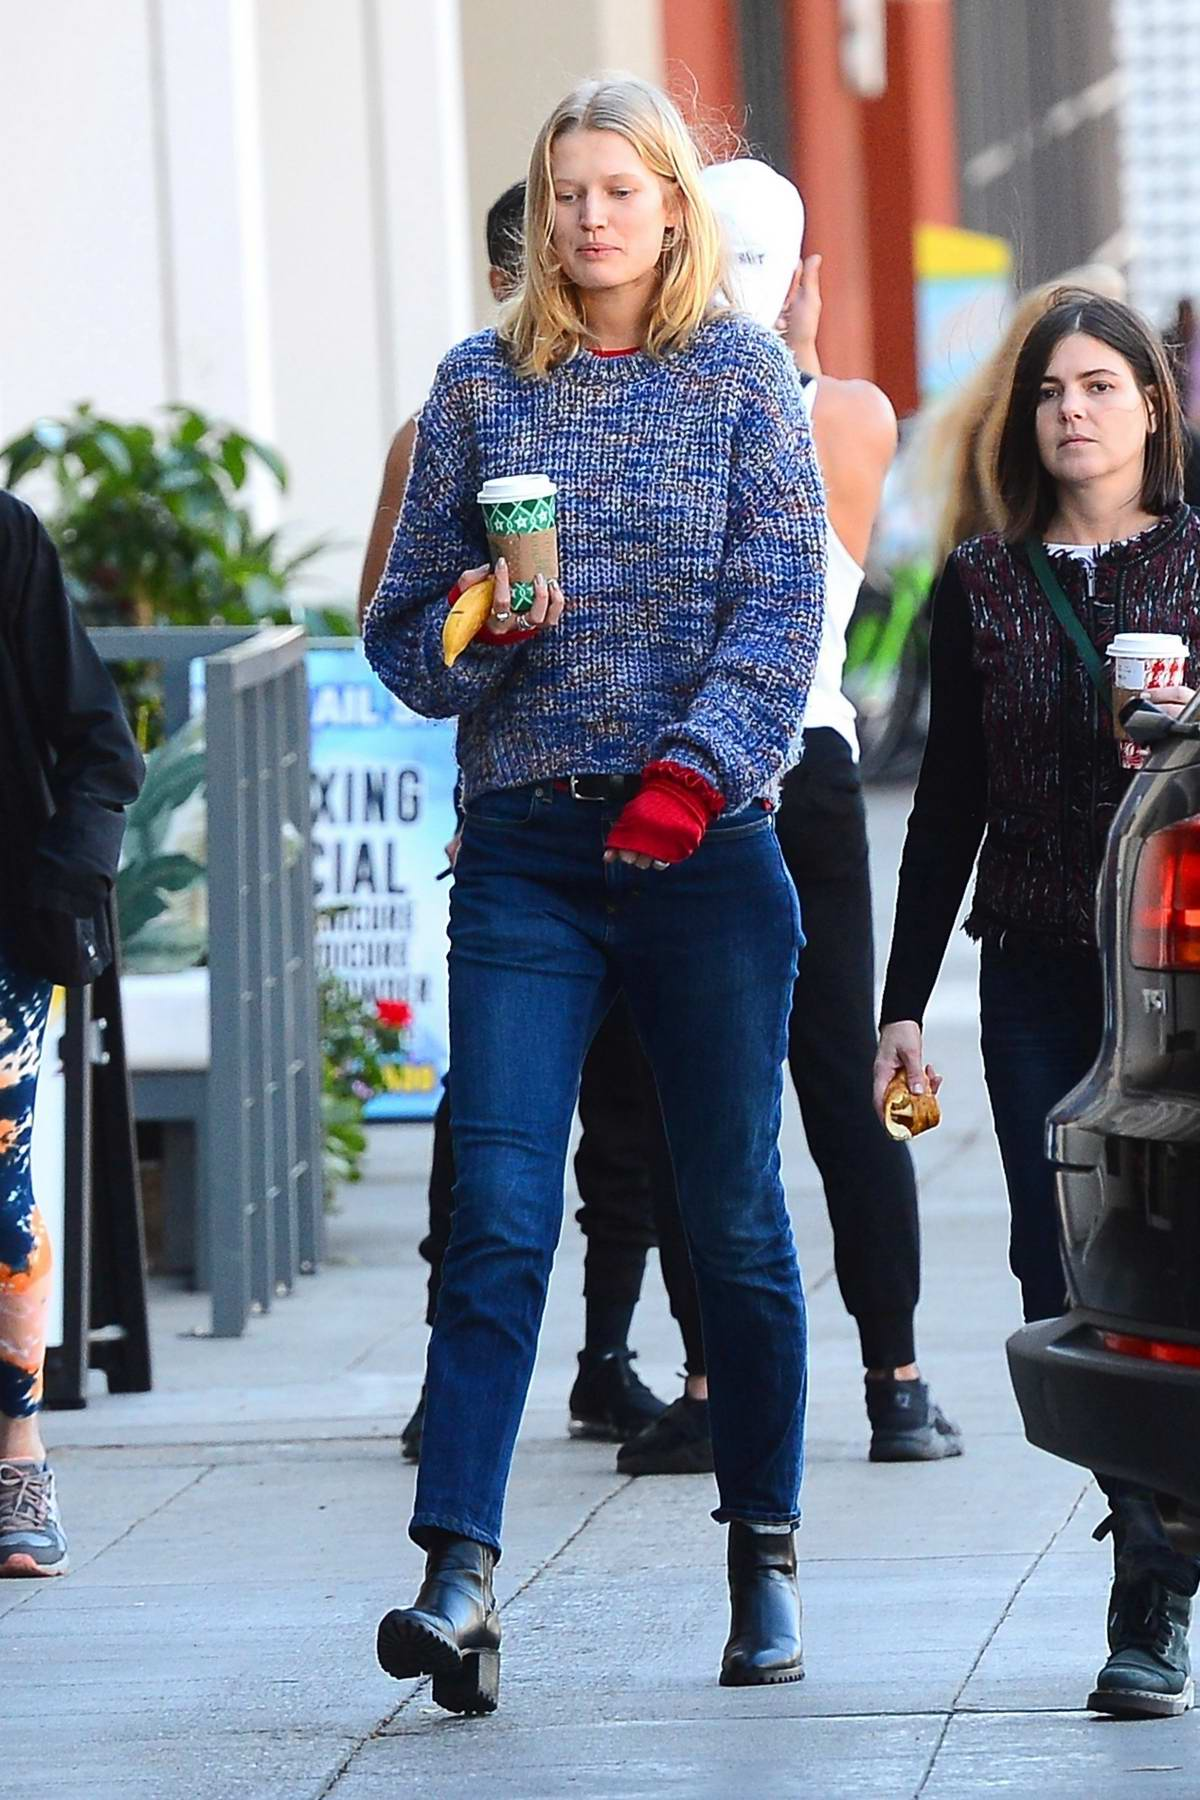 Toni Garrn keeps warm in a sweater and gloves while out for coffee with a friend in West Hollywood, Los Angeles